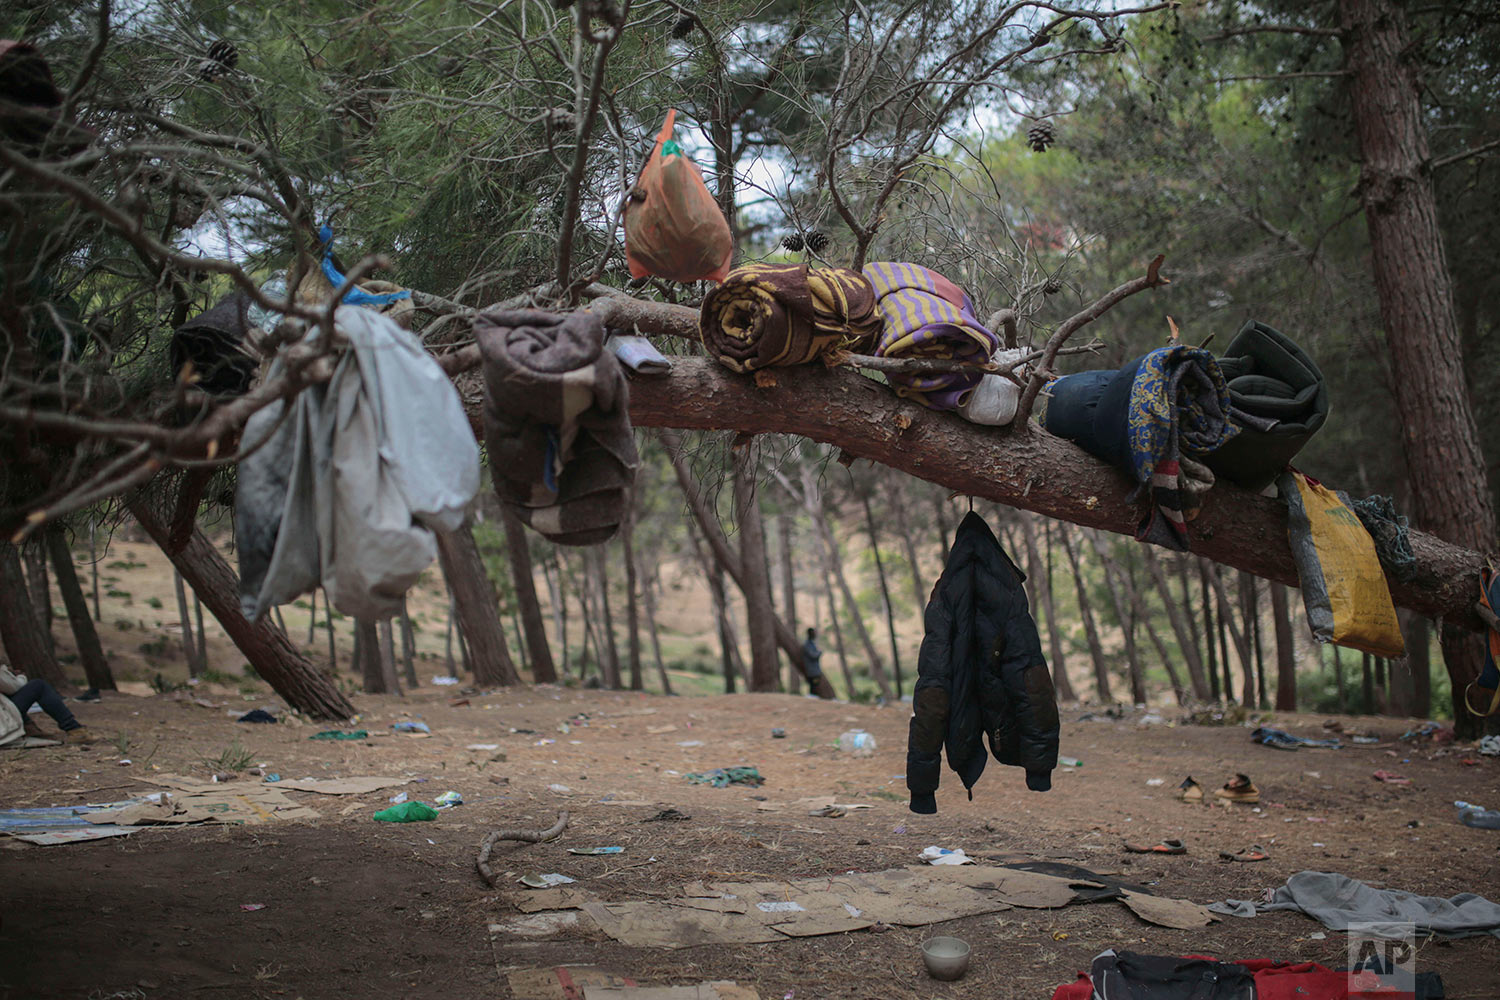 Sub-Saharan migrants aiming to cross to Europe are hung on a tree in a forest they had taken shelter in, Sept. 8, 2018, near Masnana, on the outskirts of Tangier, Morocco. (AP Photo/Mosa'ab Elshamy)